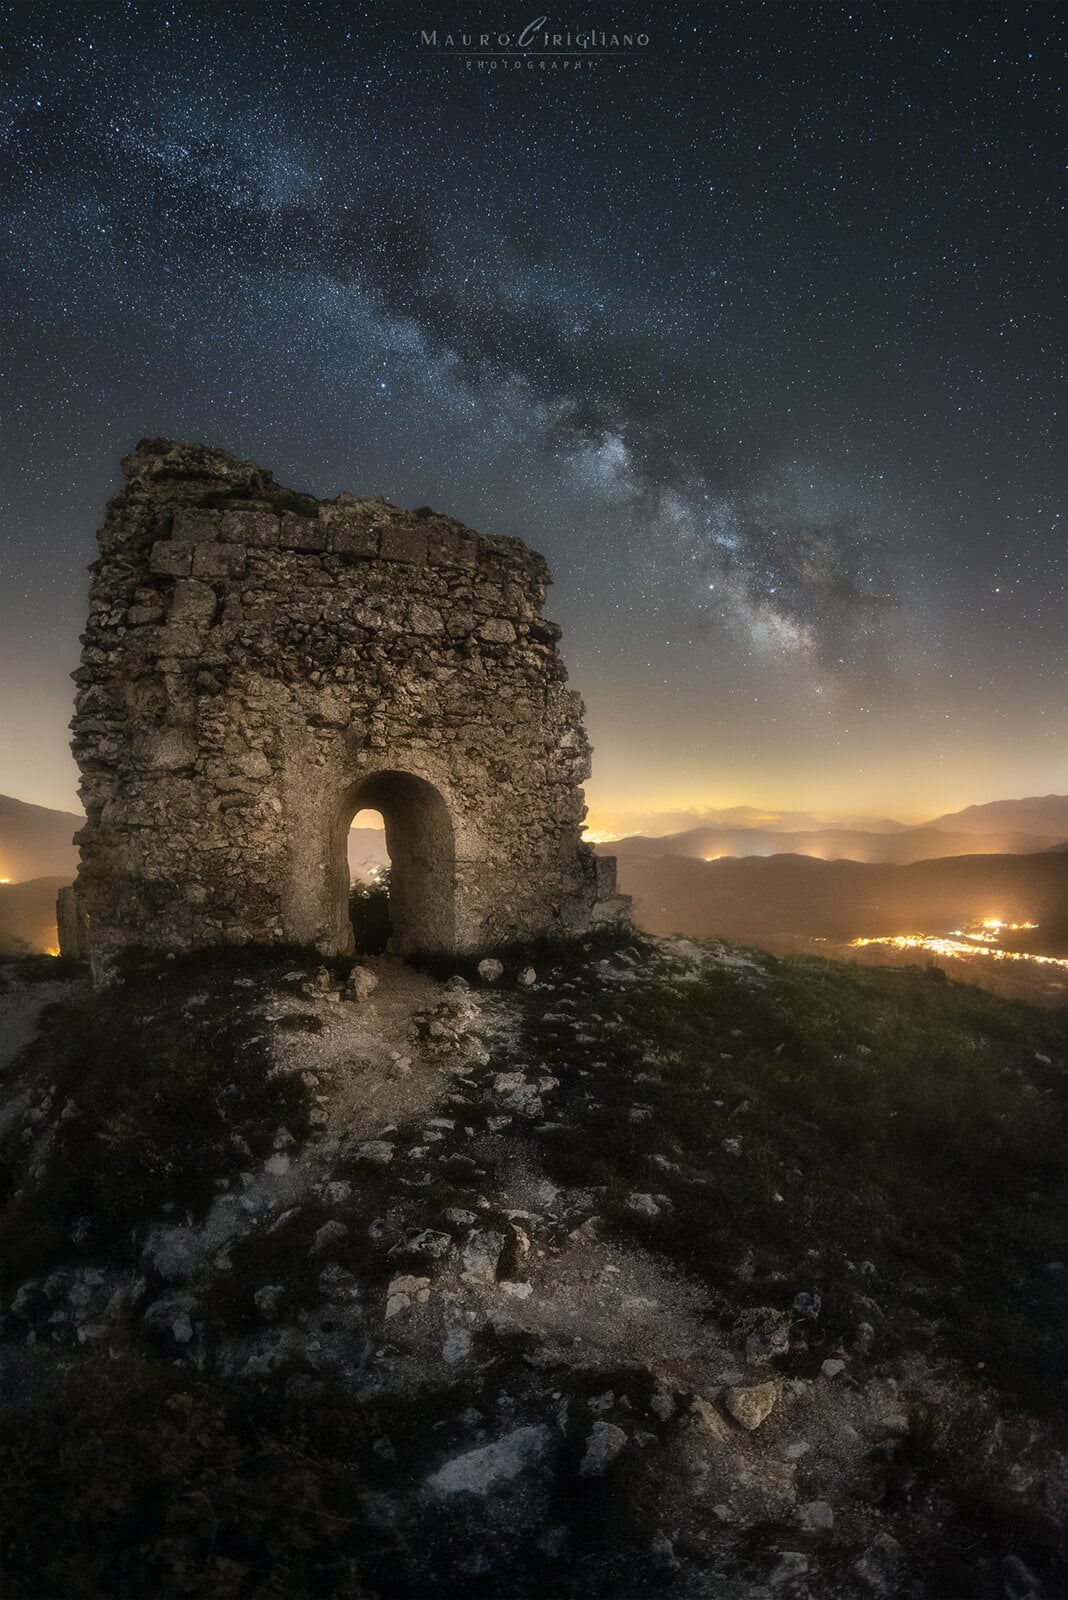 starry sky over ancient stone ruins